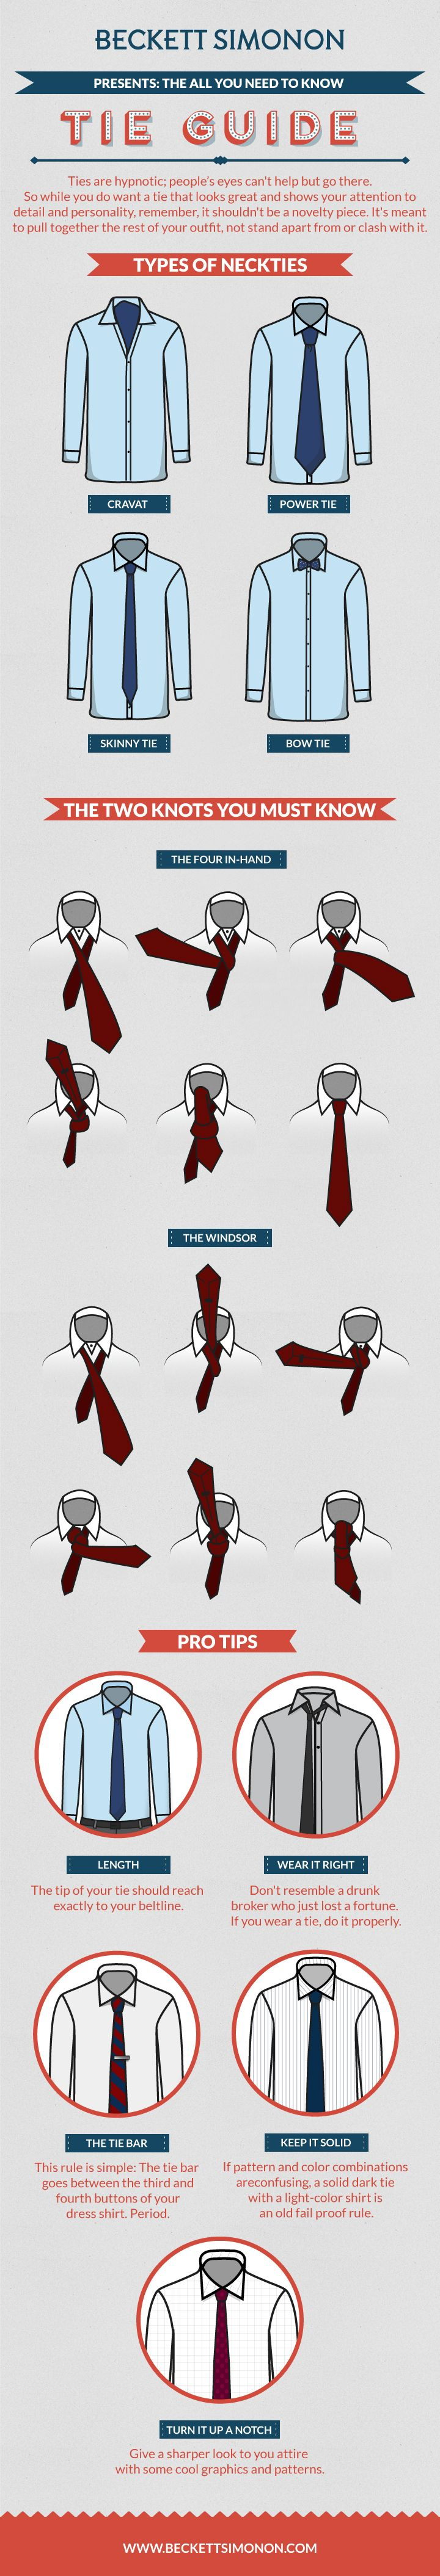 The all you need to know guide about ties - Beckett Simonon - Beckett Simonon